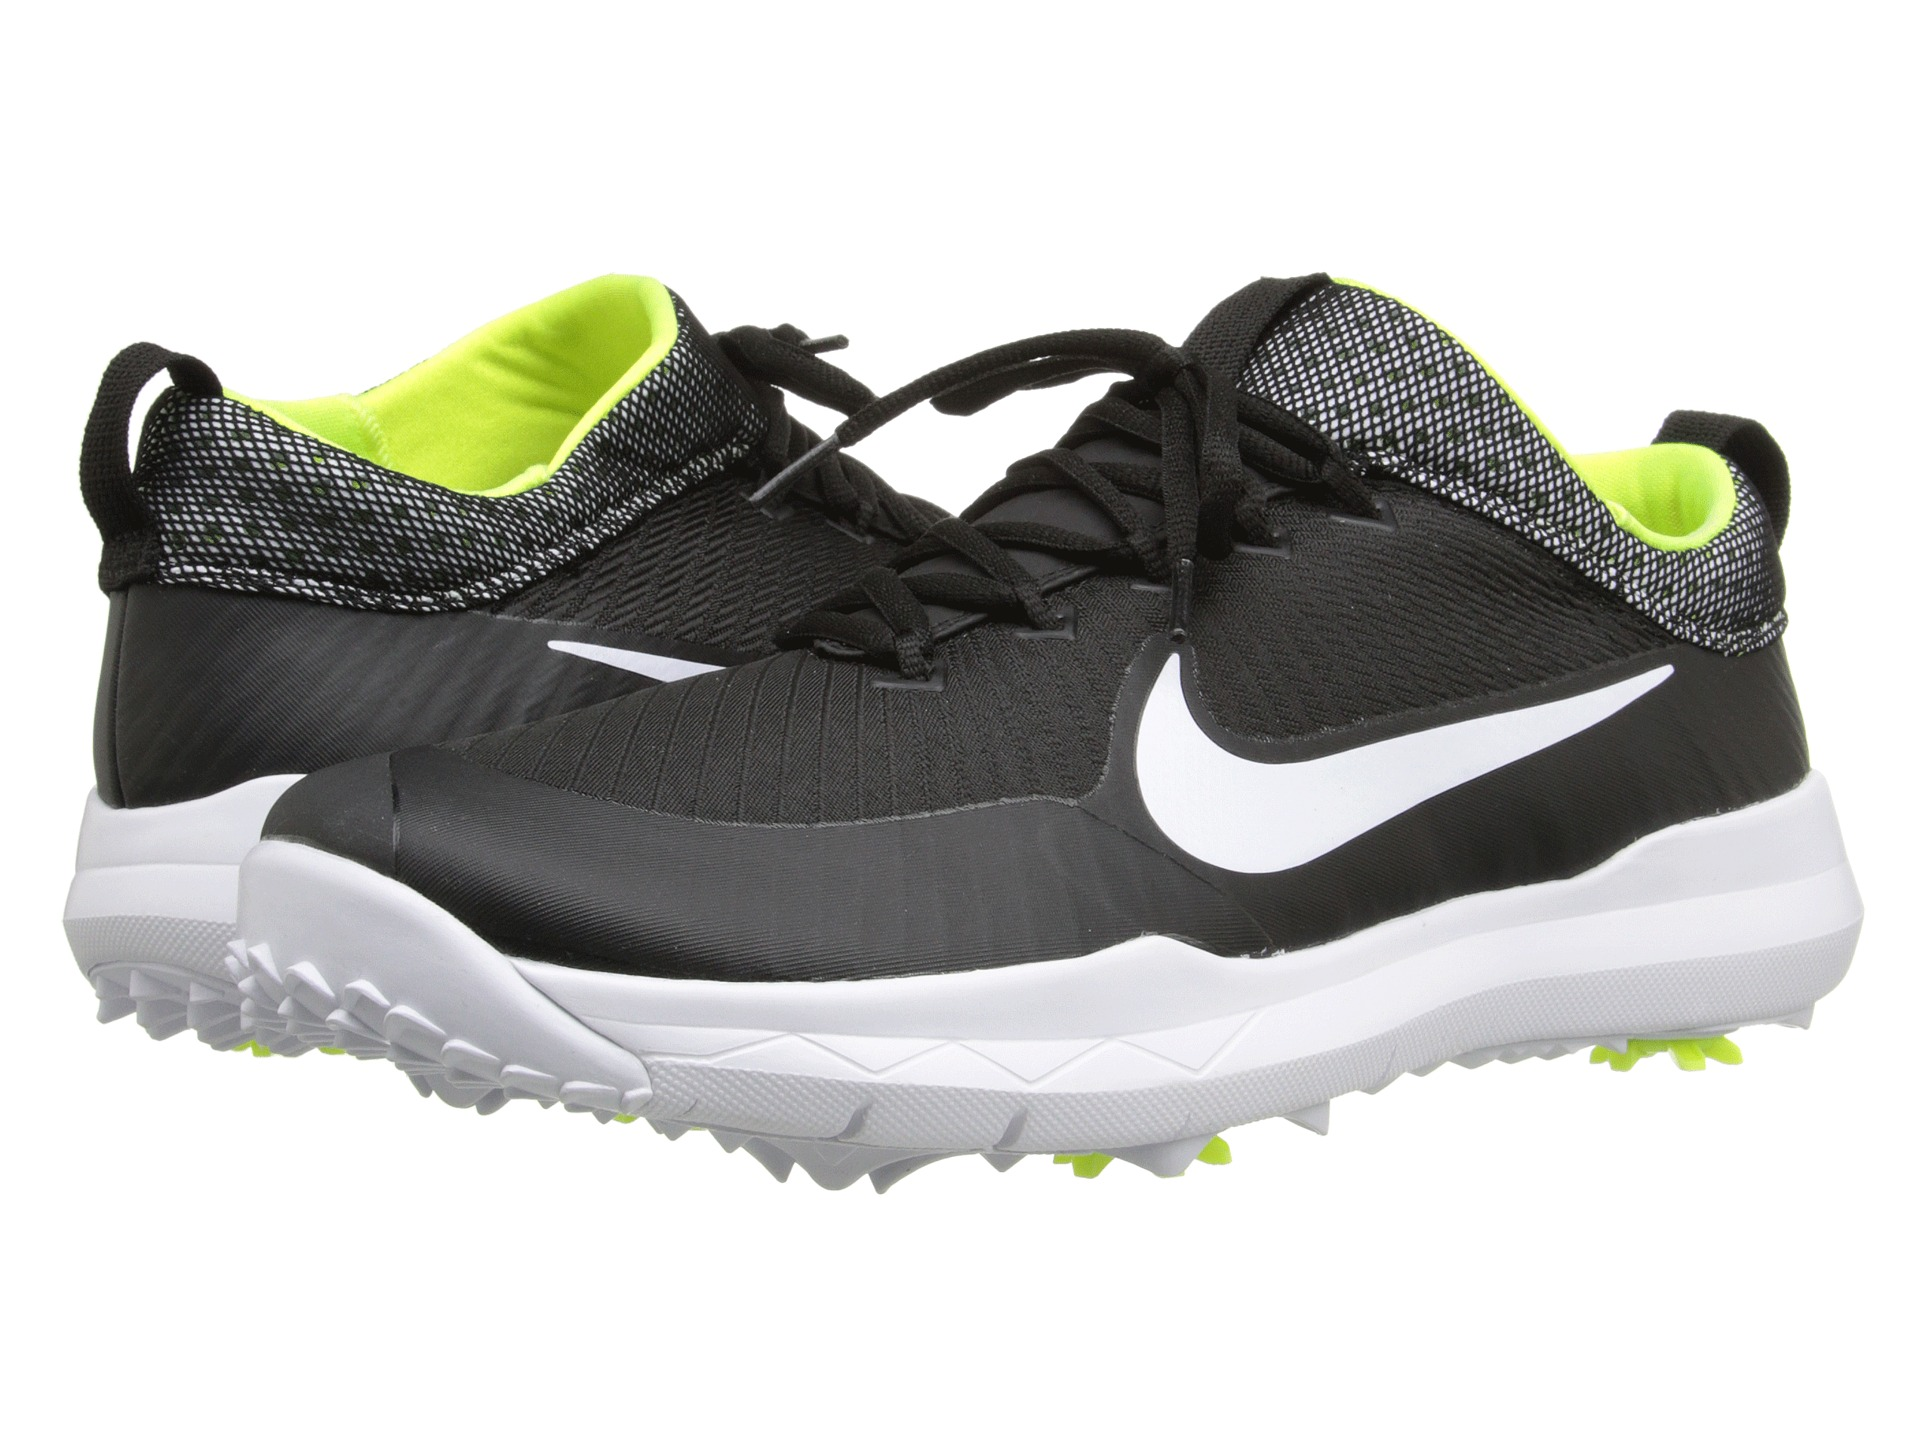 half off 9fa43 6f763 danh gia nike air max tailwind 7 what is a womens size 8 in mens shoes